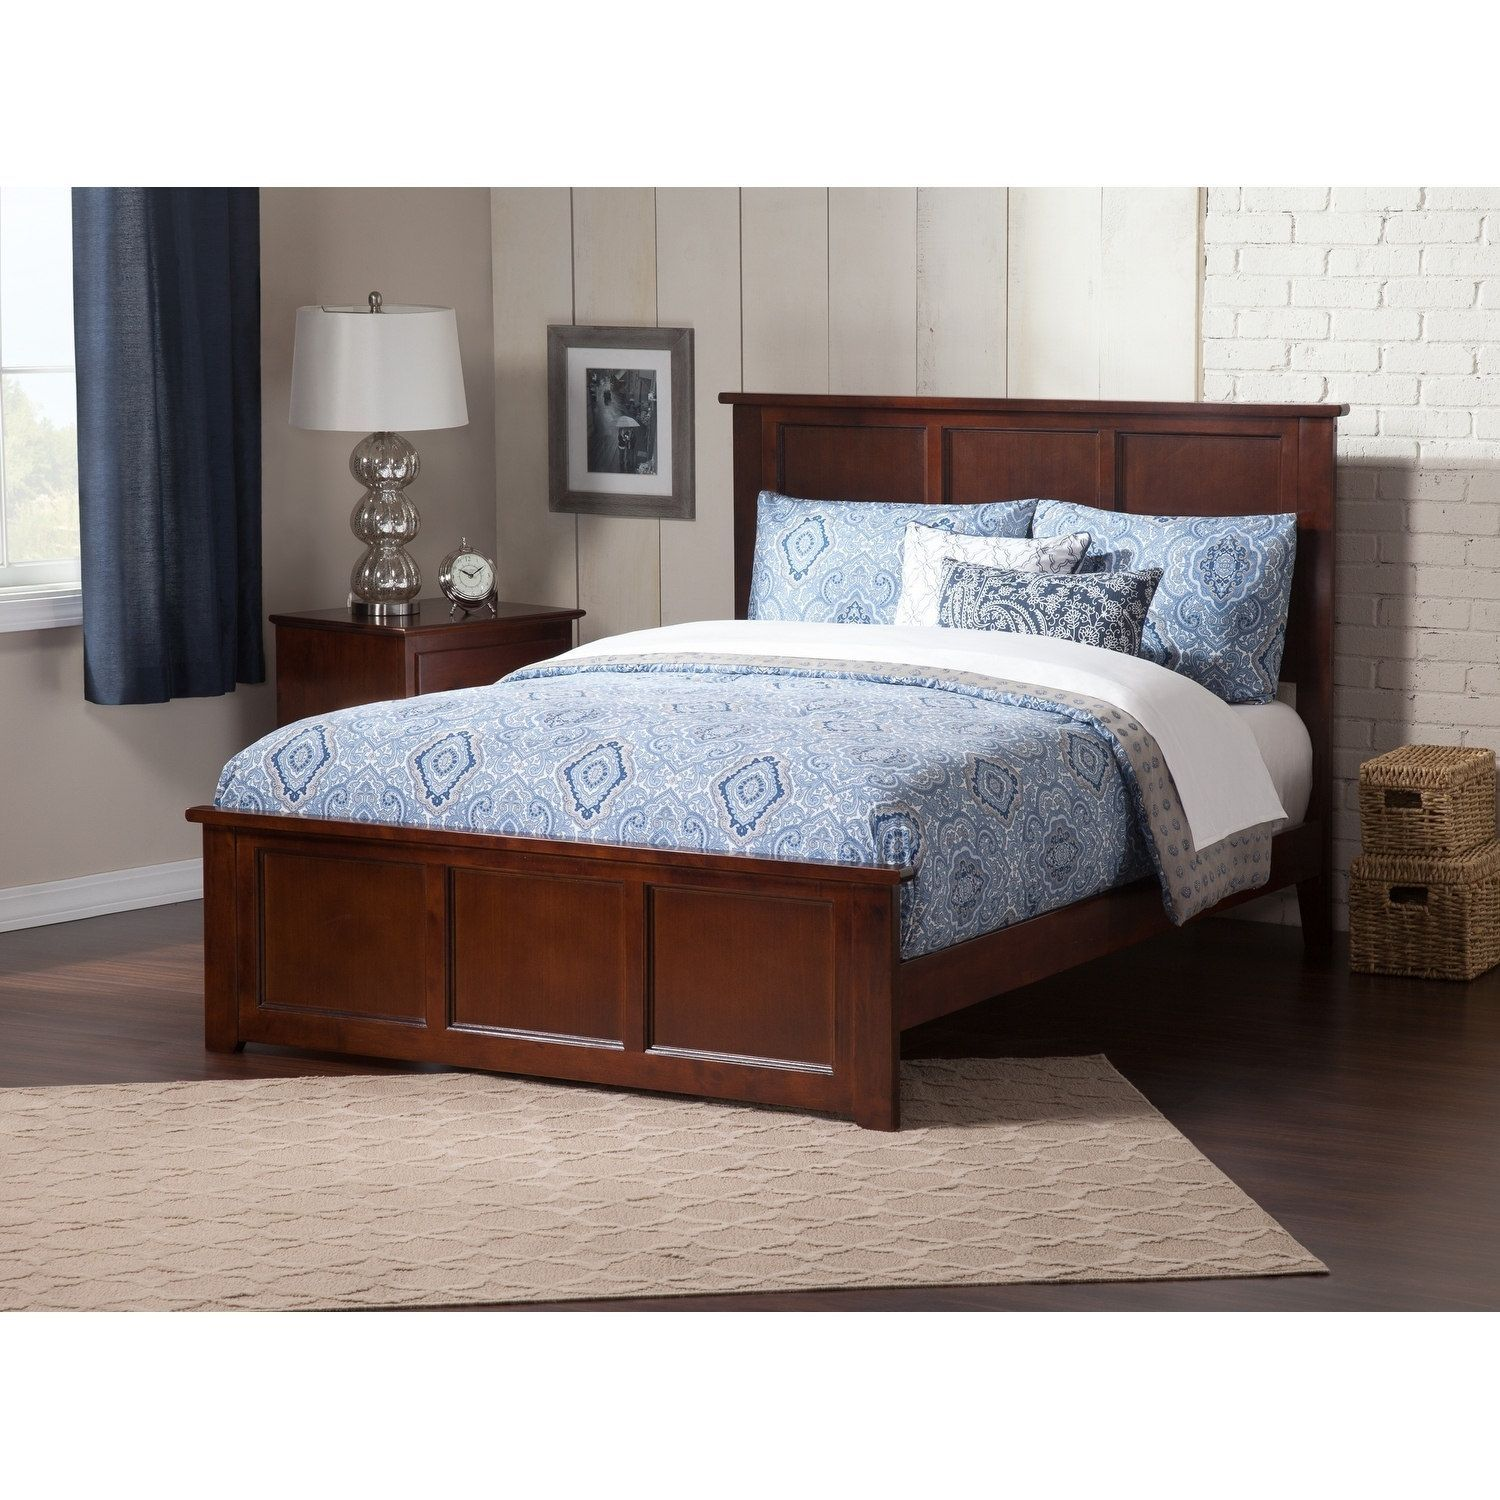 Atlantic Furniture Madison Queen Bed with Matching Foot Board in